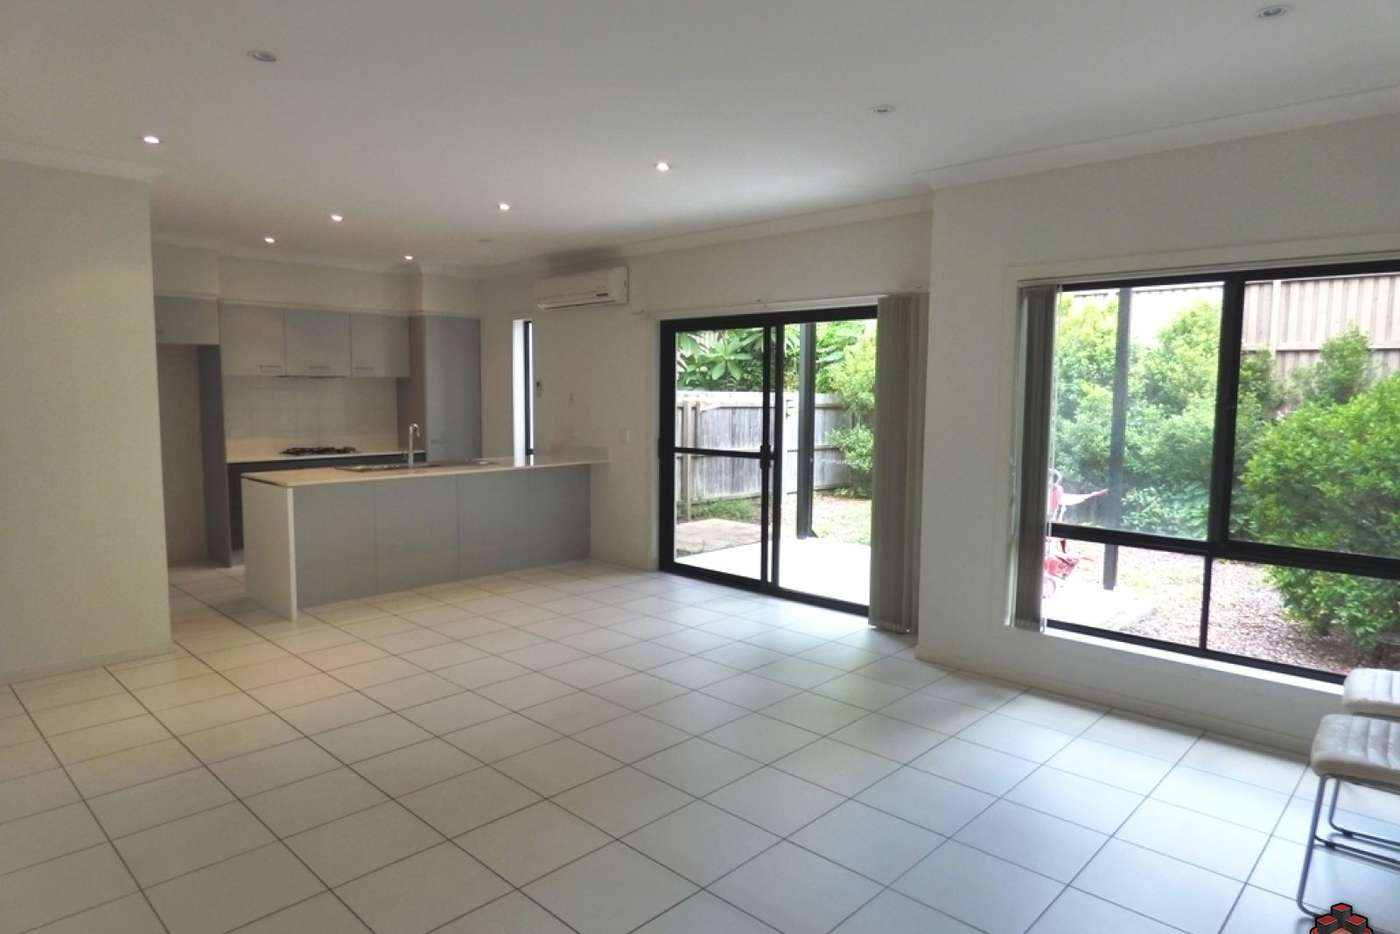 Sixth view of Homely townhouse listing, ID:21066417/16 Surbiton Court, Carindale QLD 4152